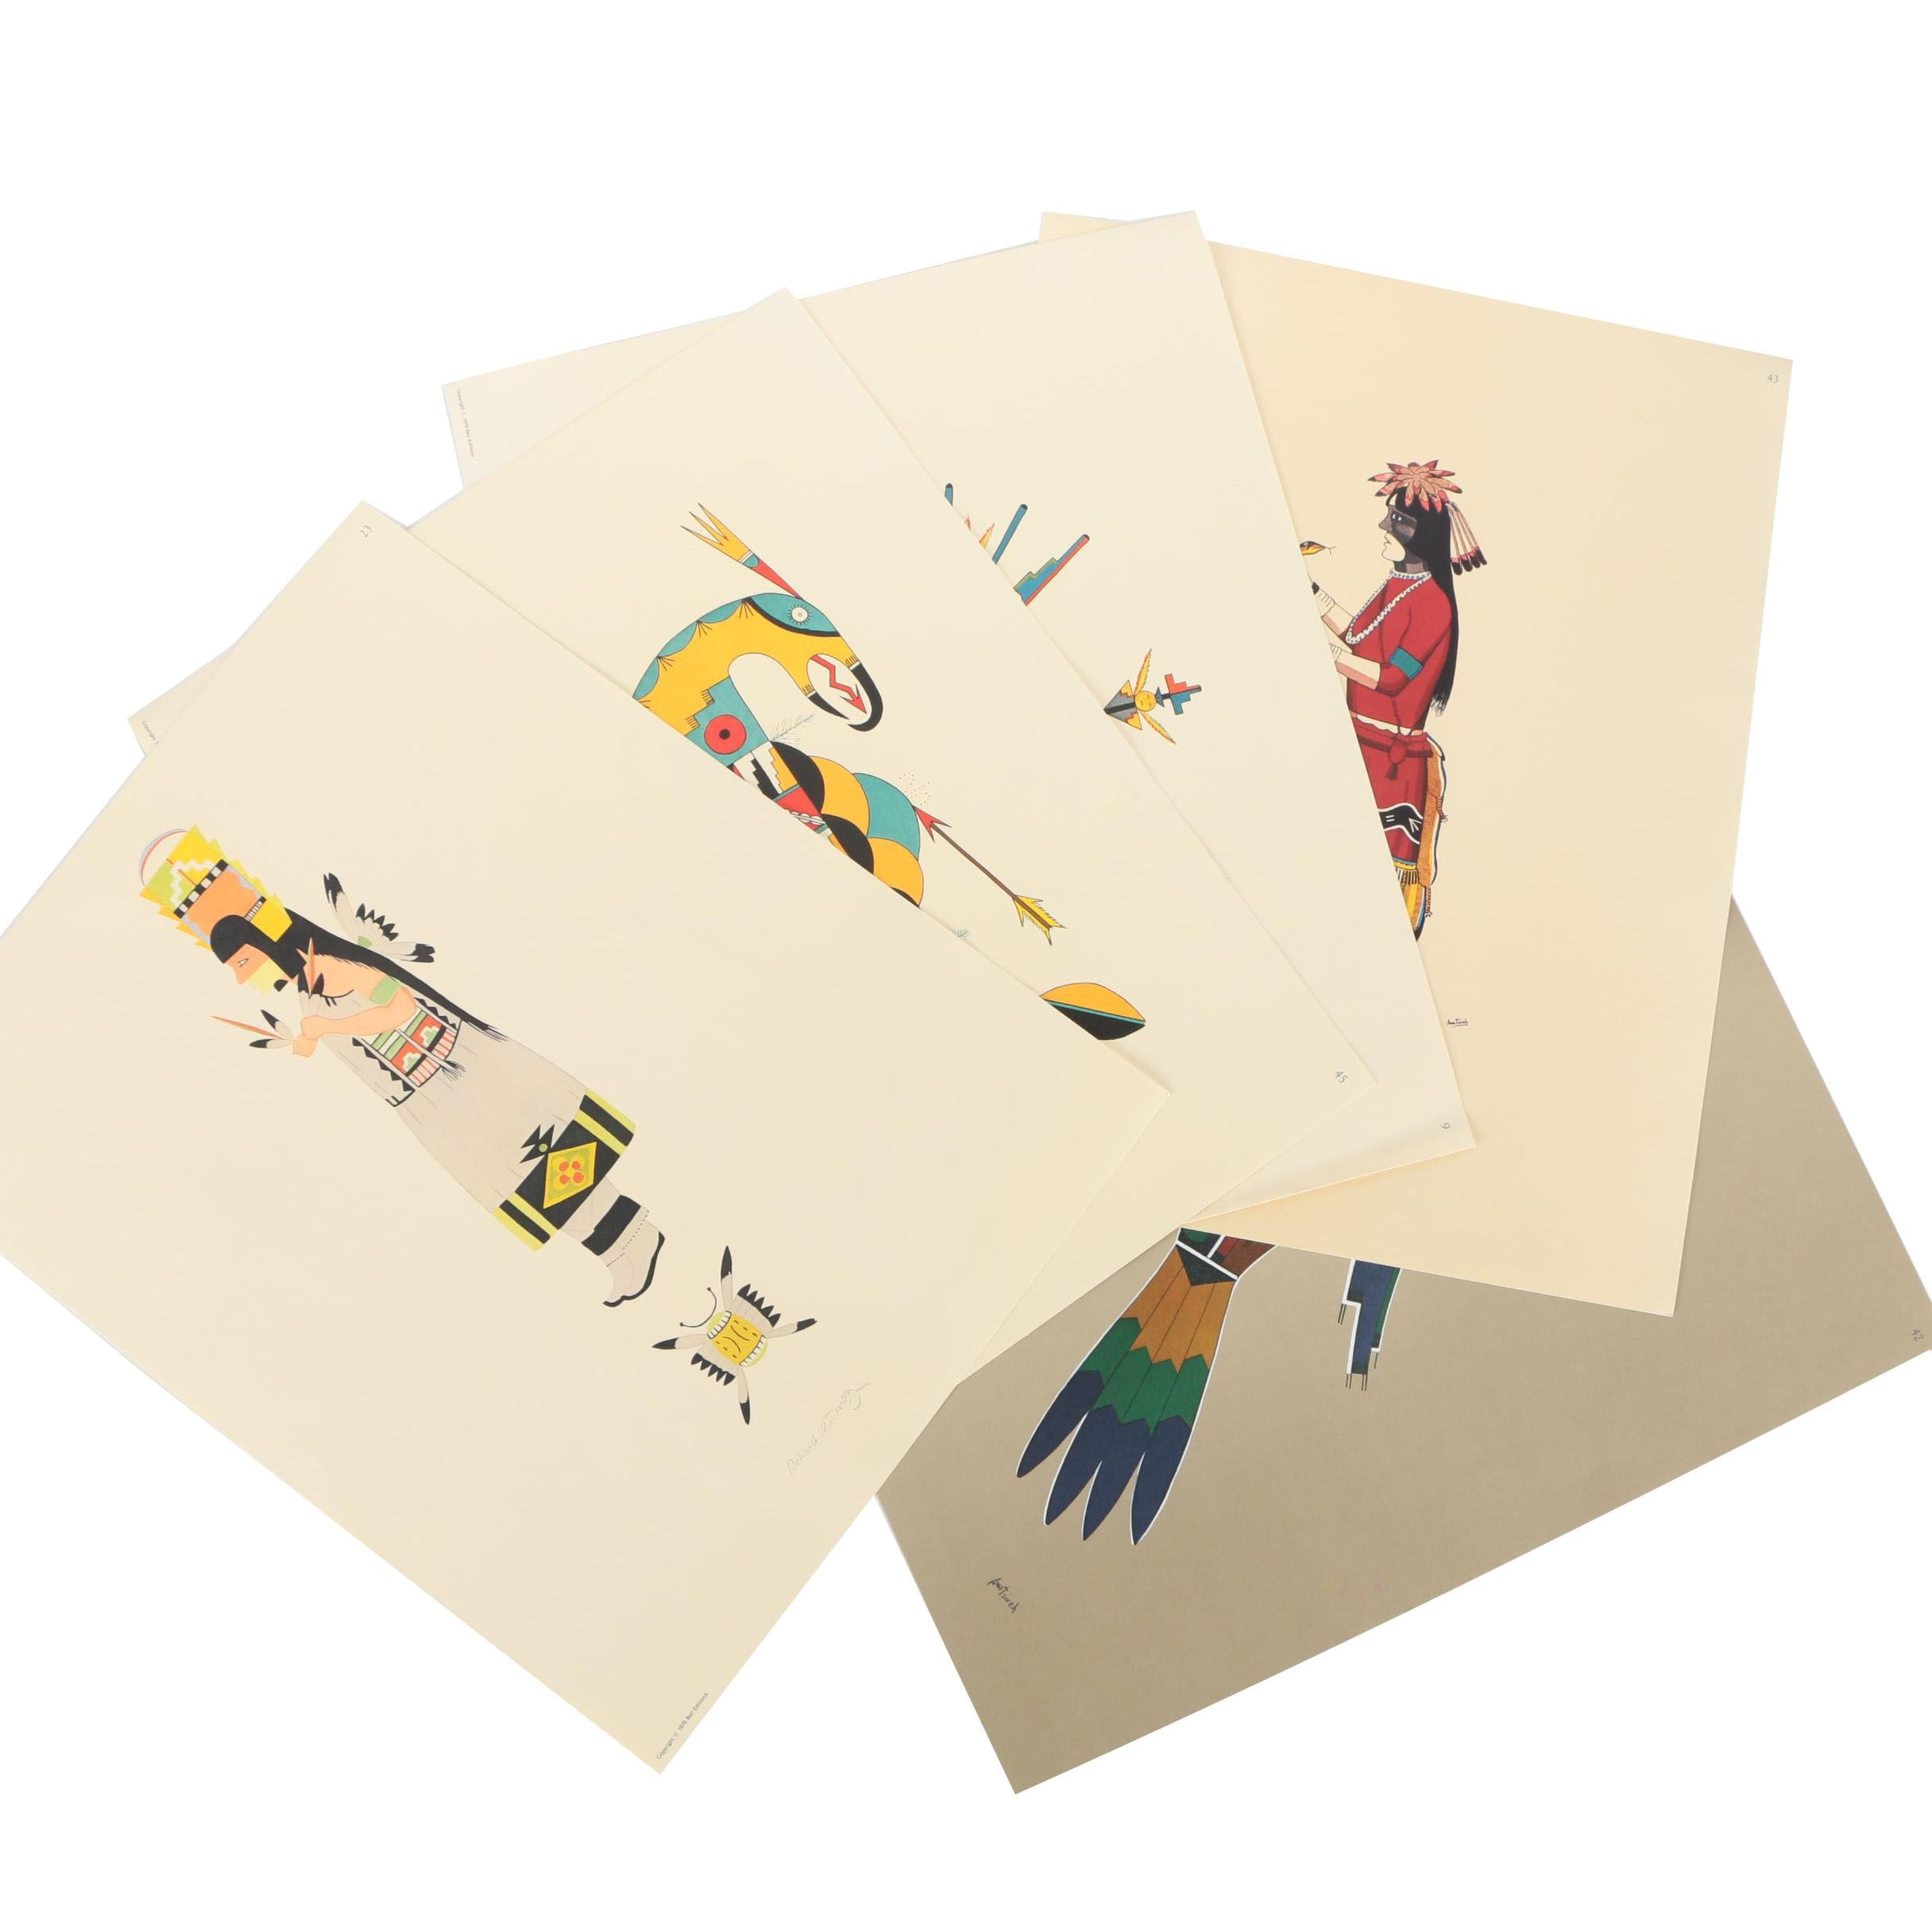 Five Aztec Inspired Offset Lithographs After Various Artists